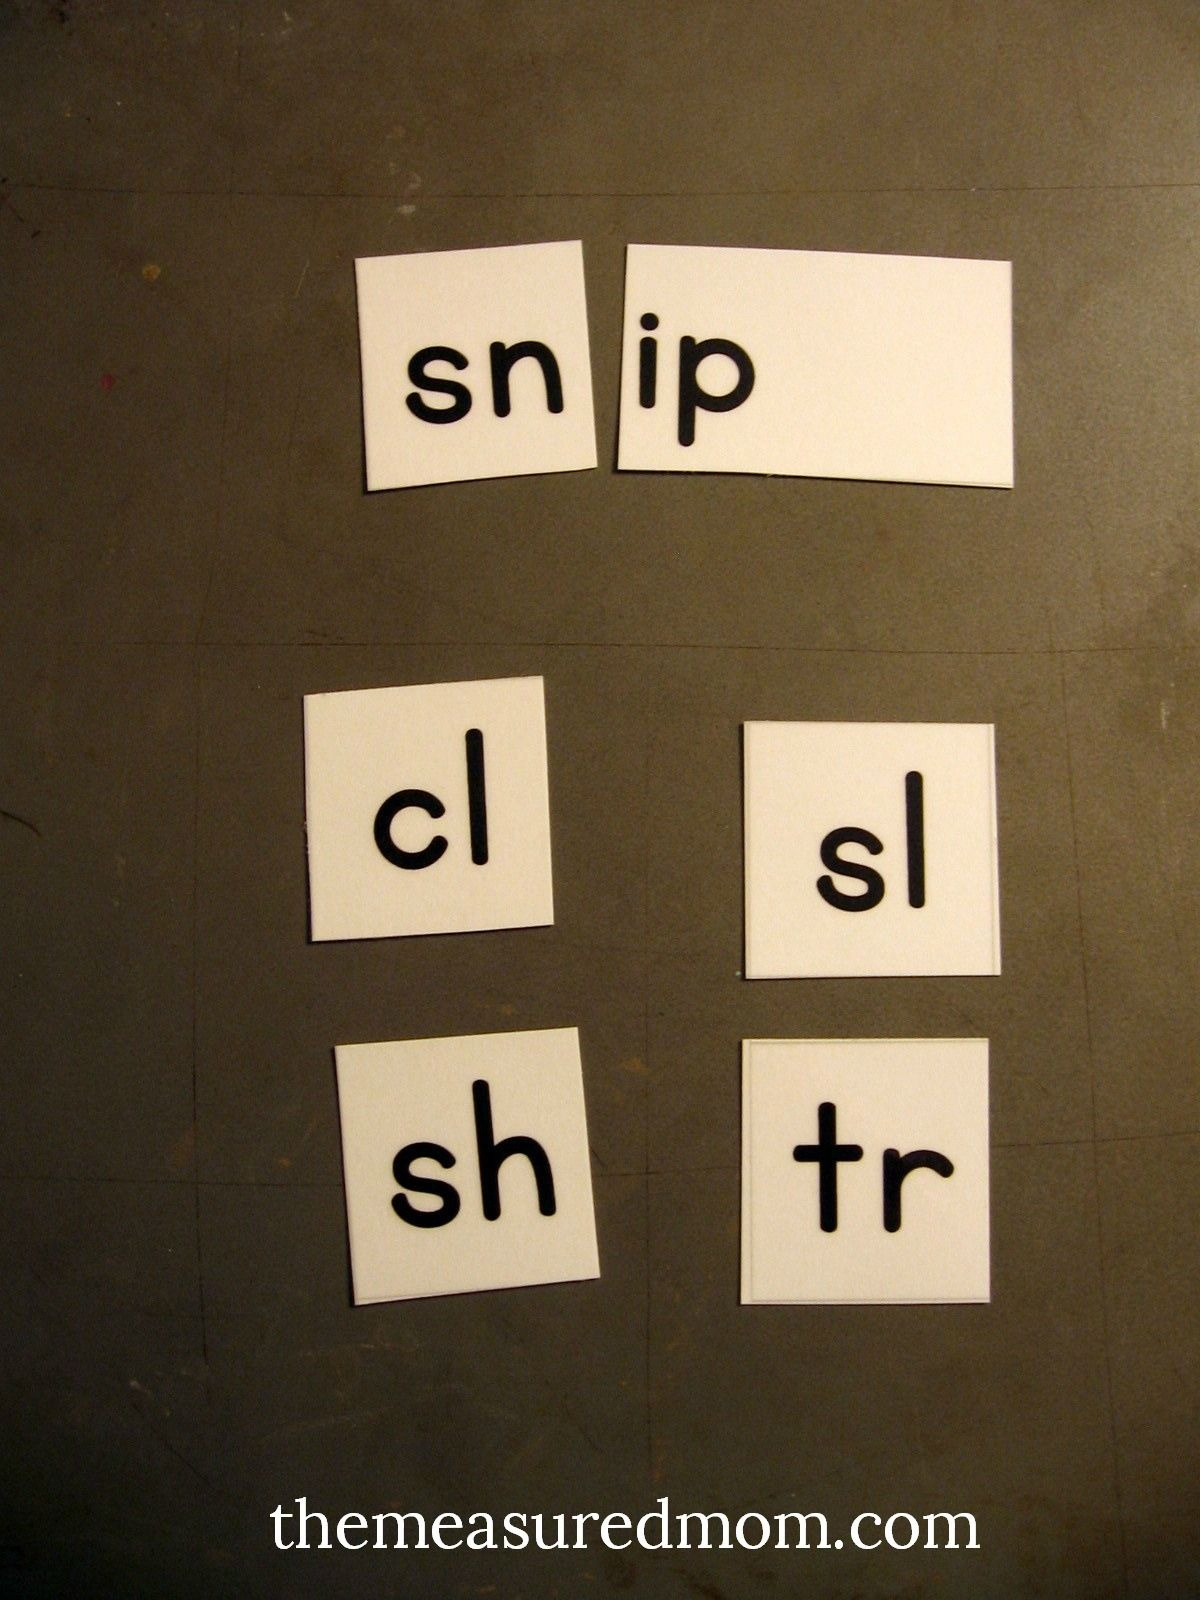 Free Printable Letter Tiles For Digraphs, Blends, And Word Endings - Wilson Reading Free Printables